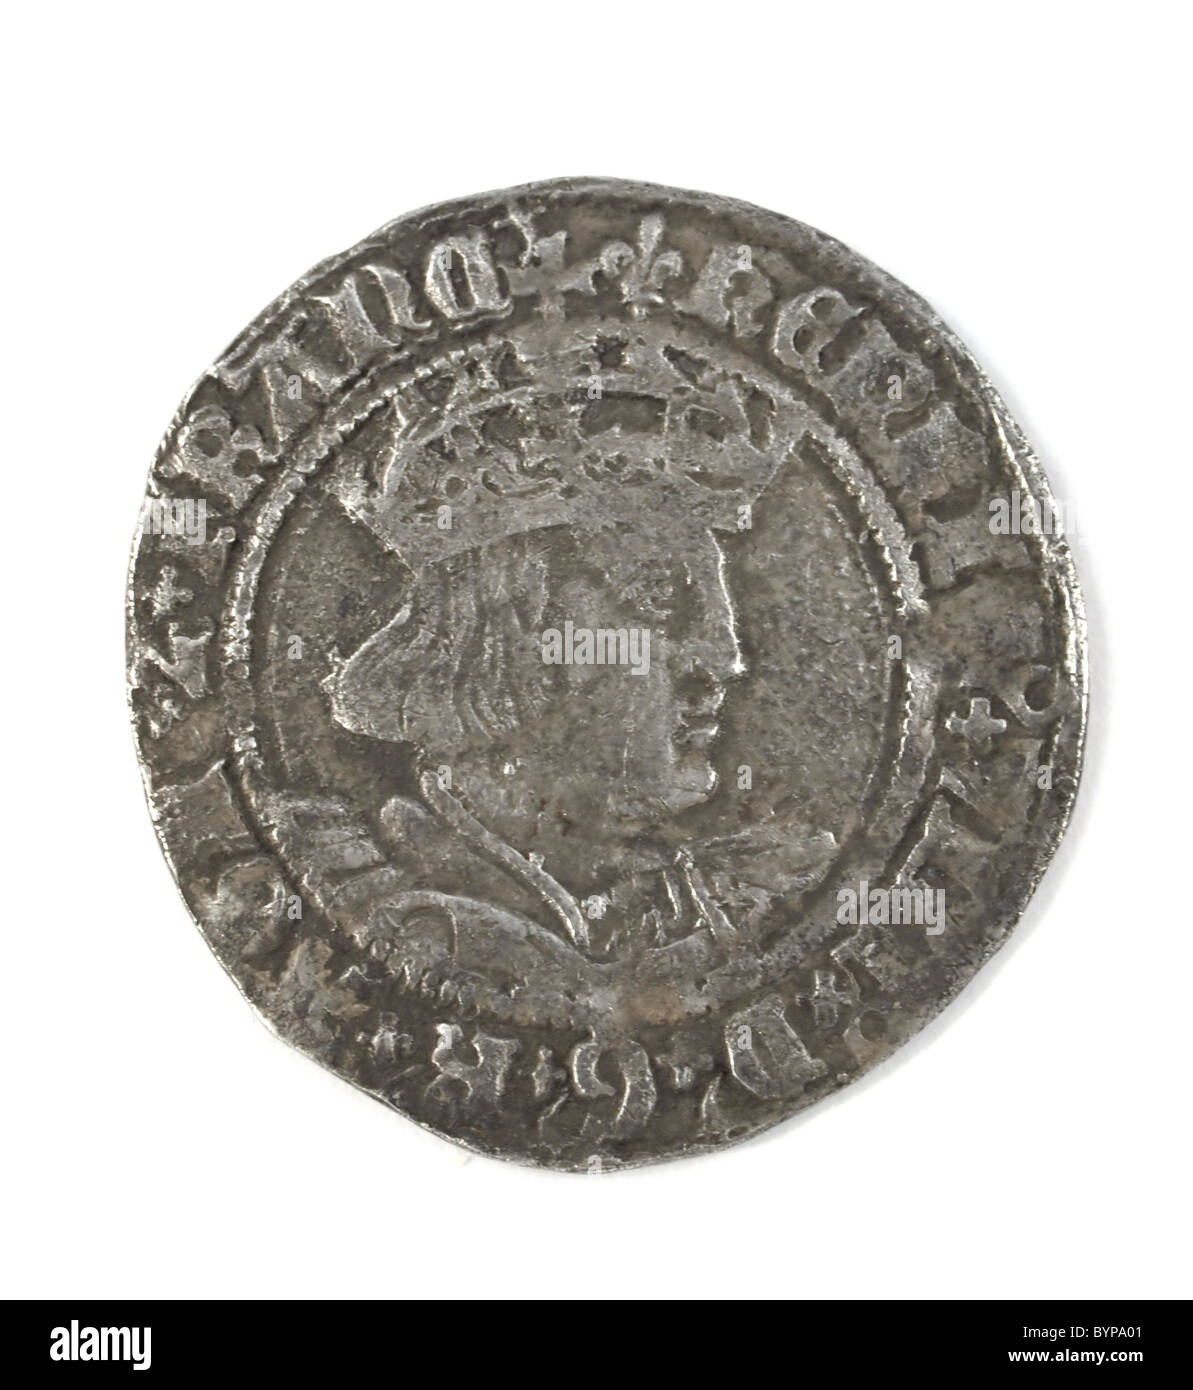 Hammered silver groat of Henry VIII 1526 -1544 - Stock Image